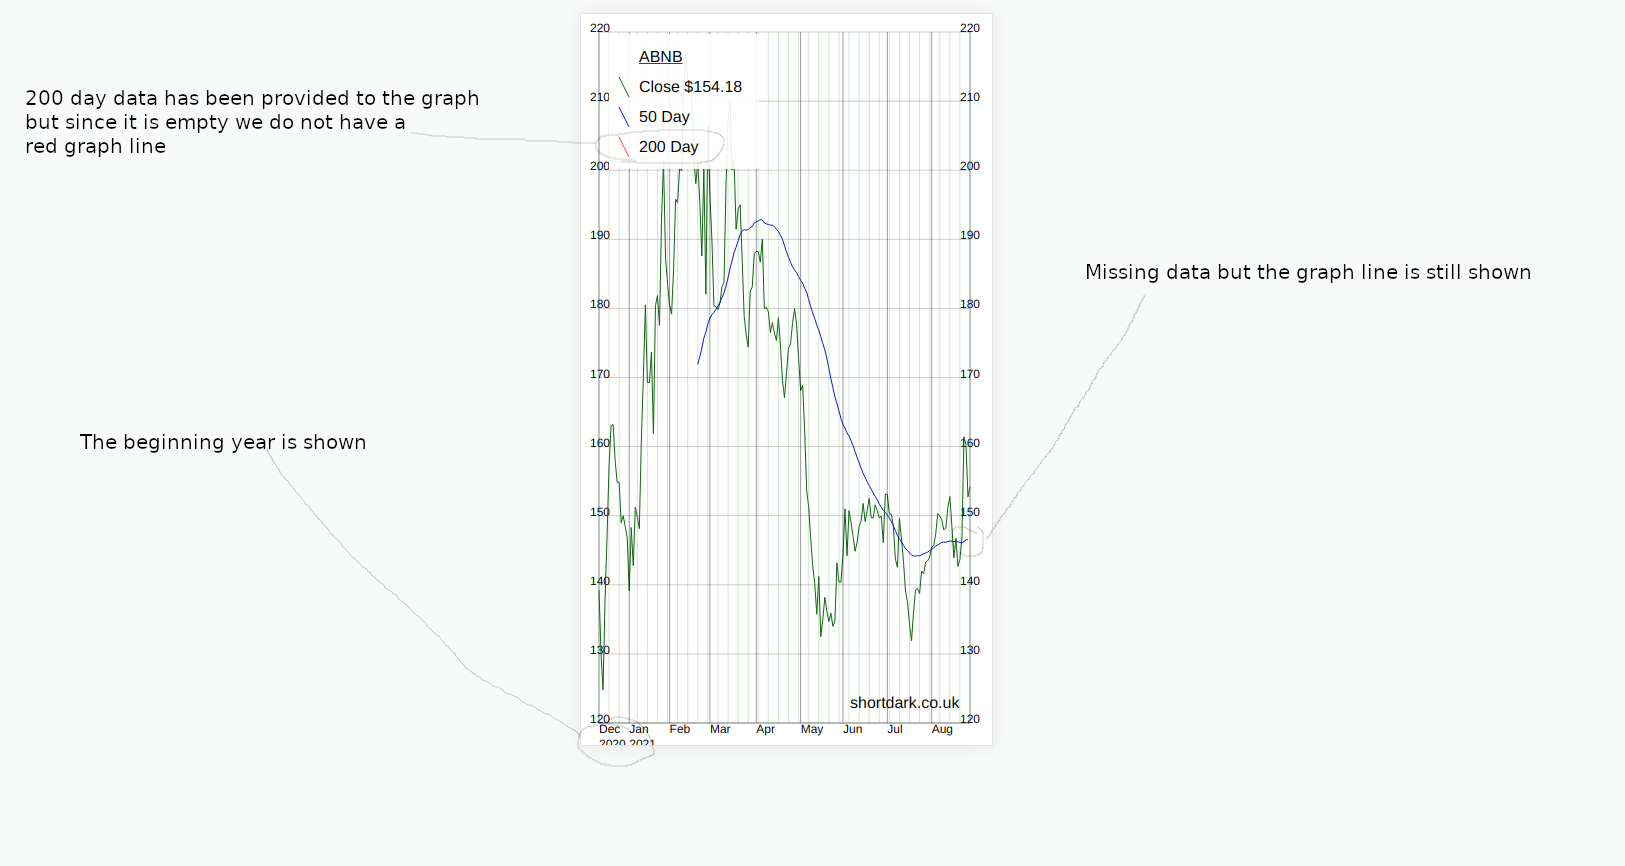 The graph is able to deal with missing data at the start of, or anywhere in the, graph line